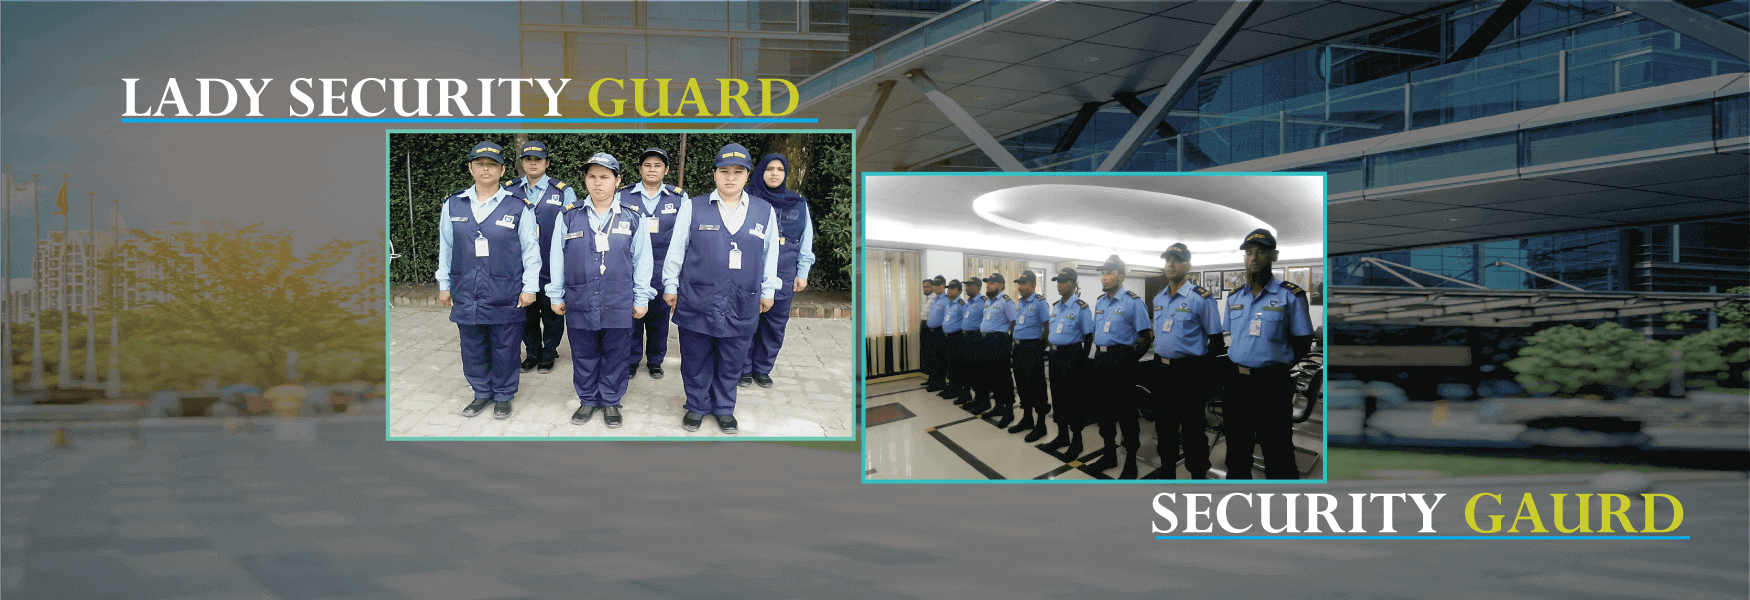 Lady-security-gaurd,-security-gaurd